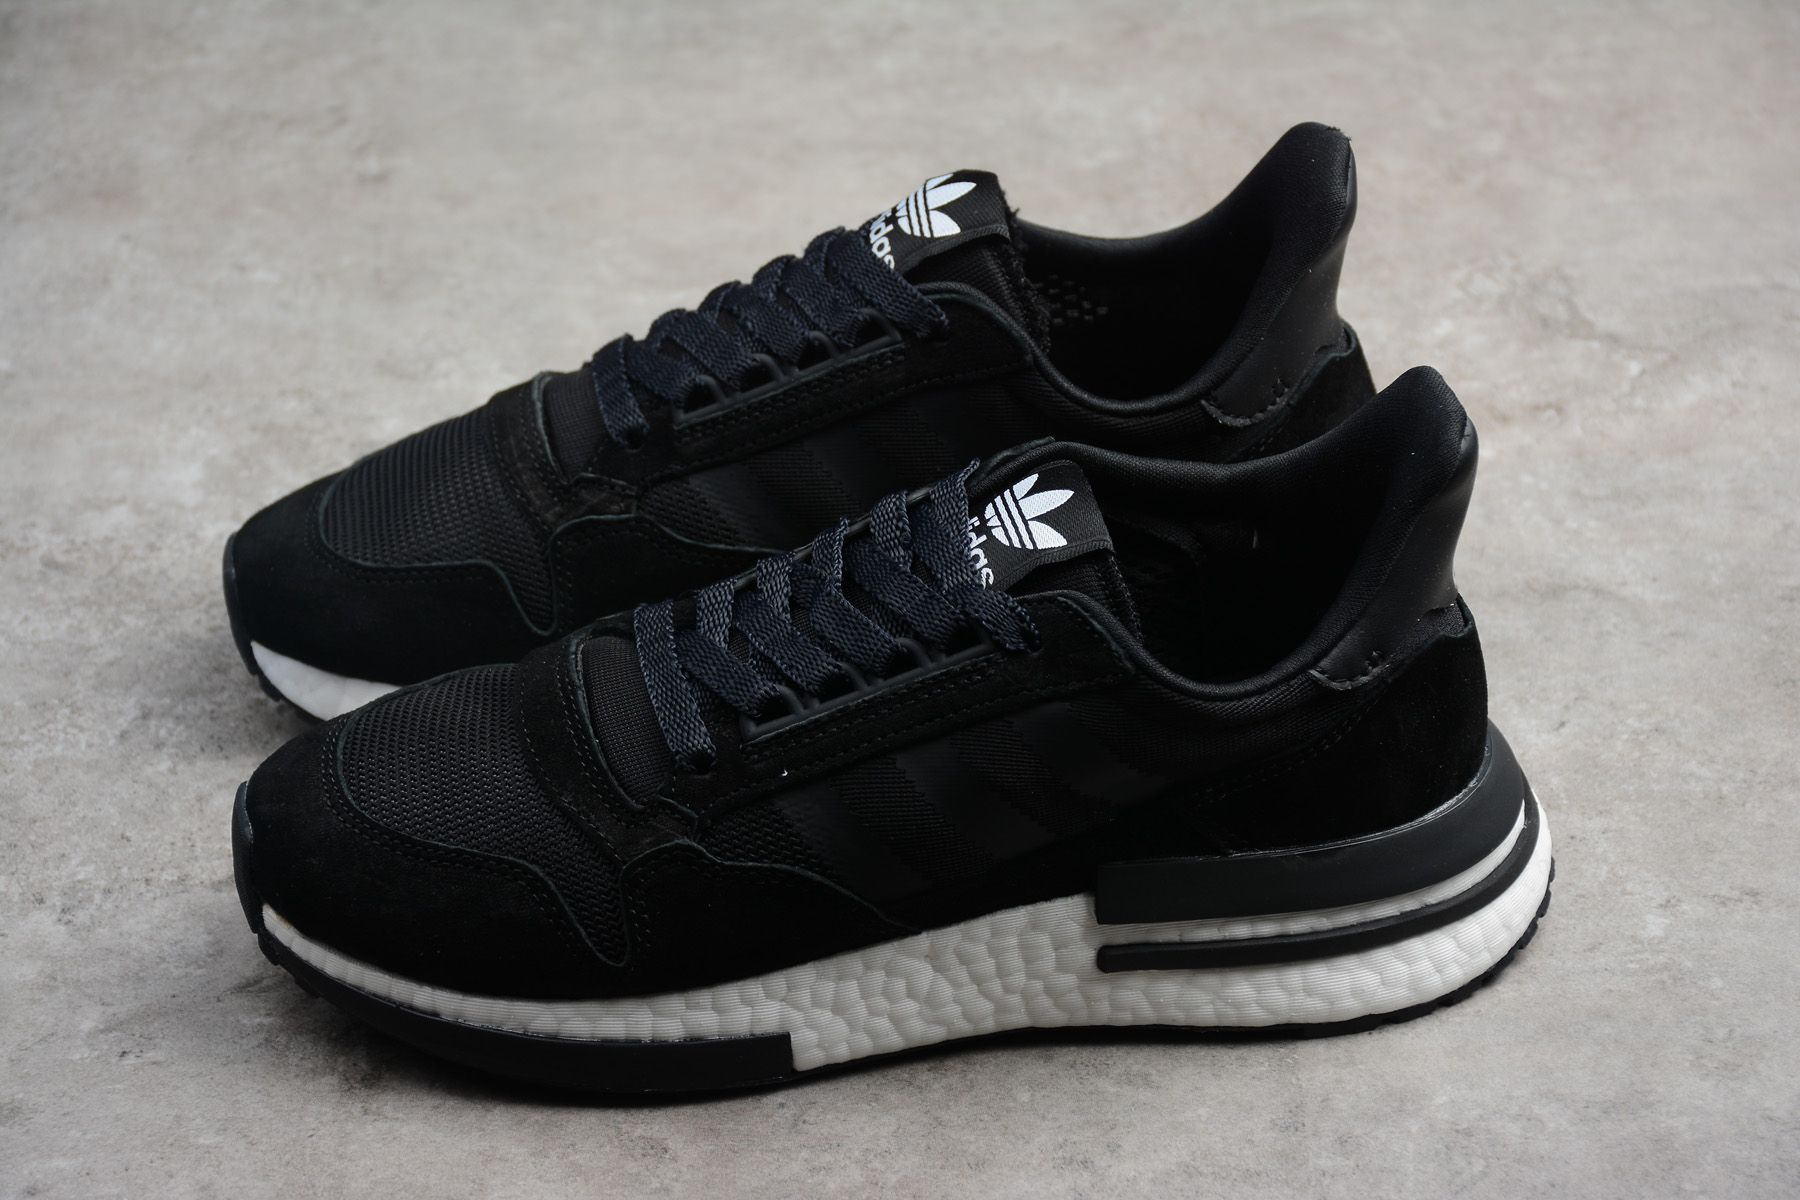 new style 8dc47 de87e adidas ZX500 RM Boost Black White BB7445 Shoes For Cheap ...